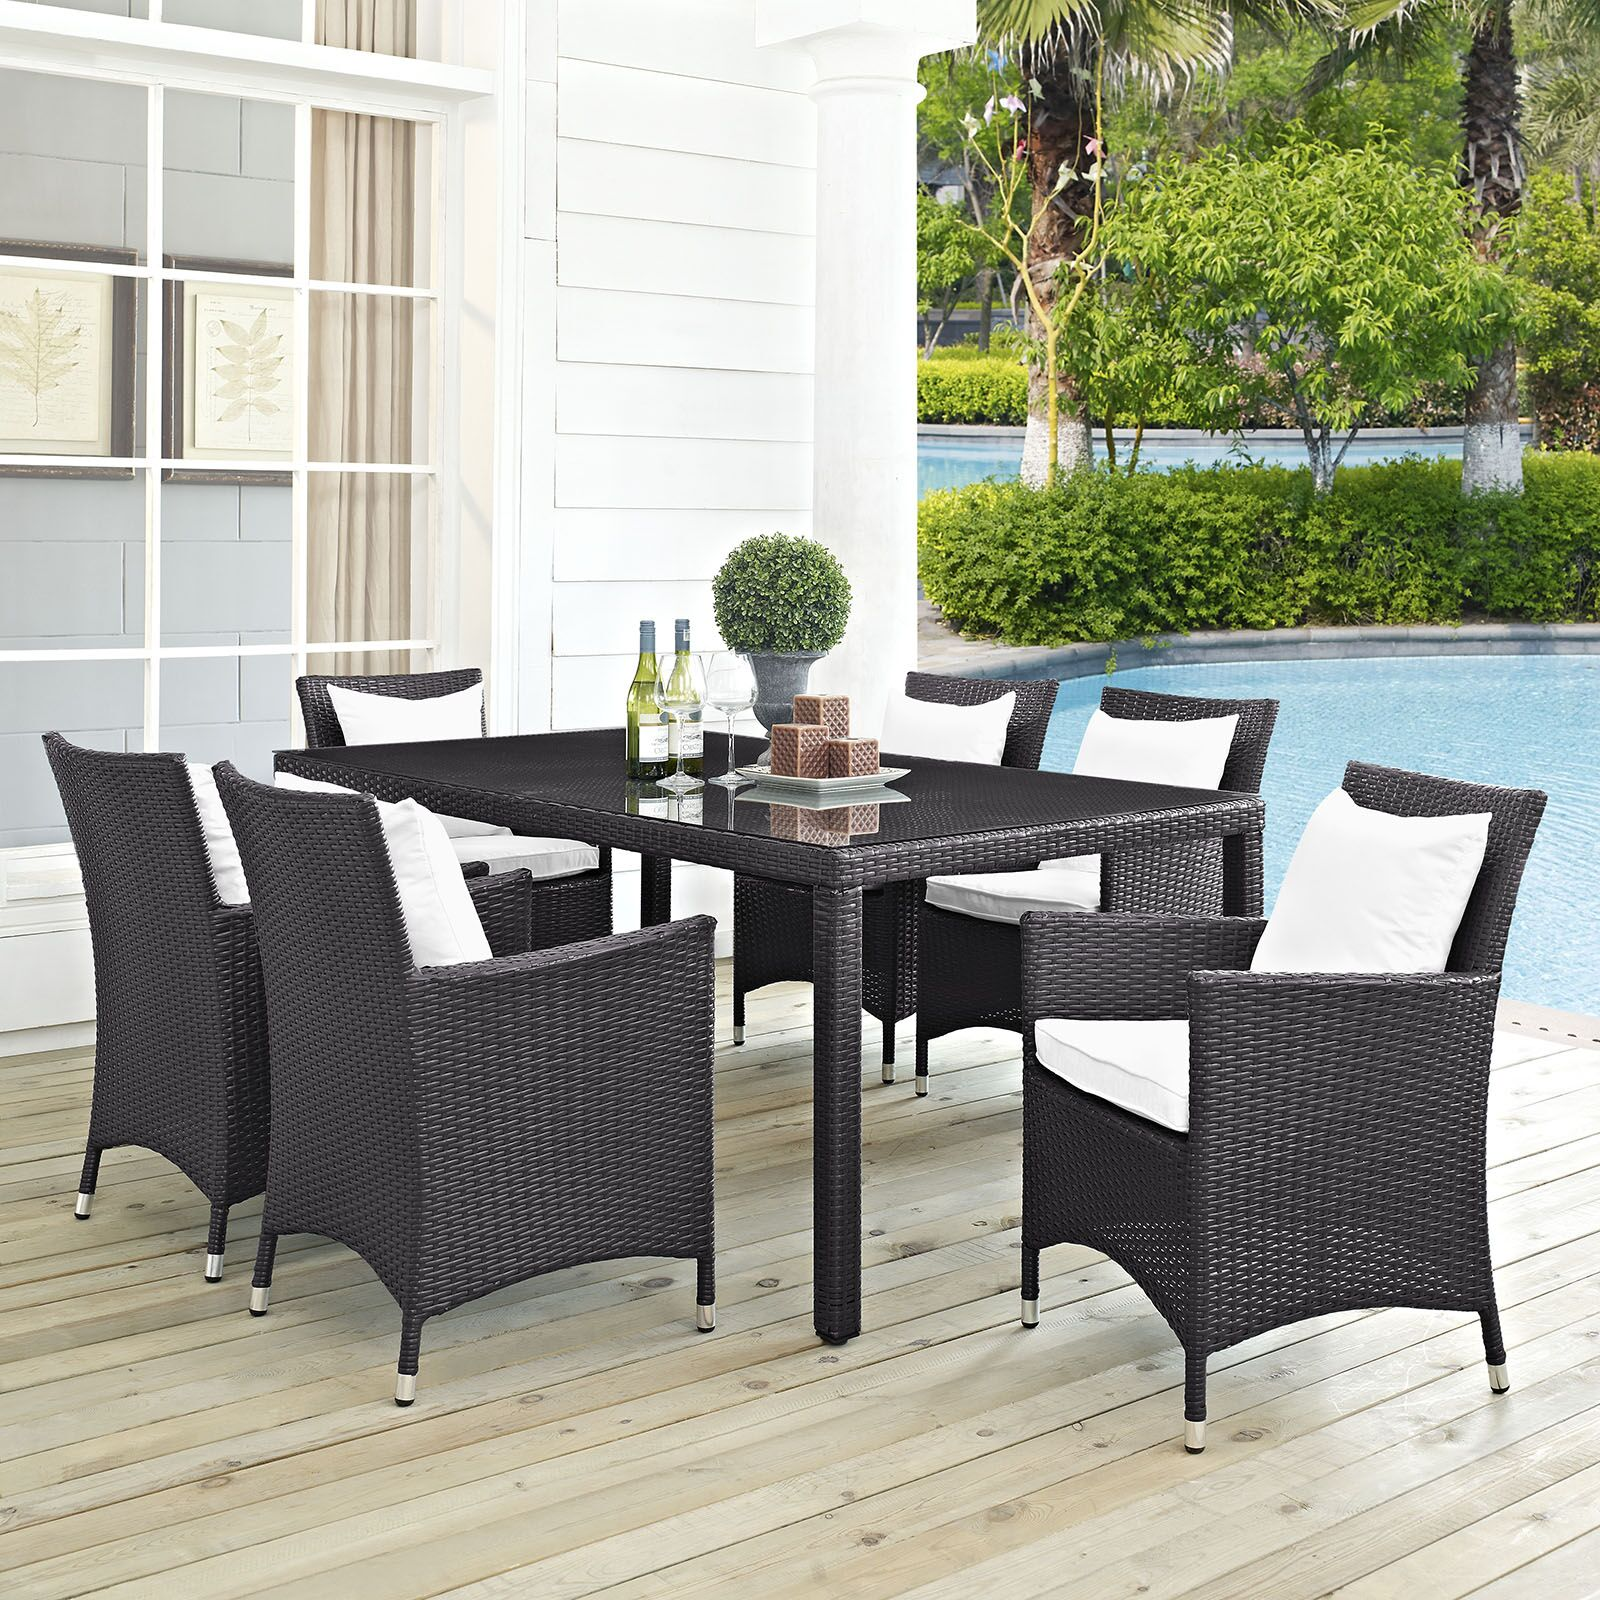 Ryele 7 Piece Outdoor Patio Dining Set with Cushions Cushion Color: Espresso White